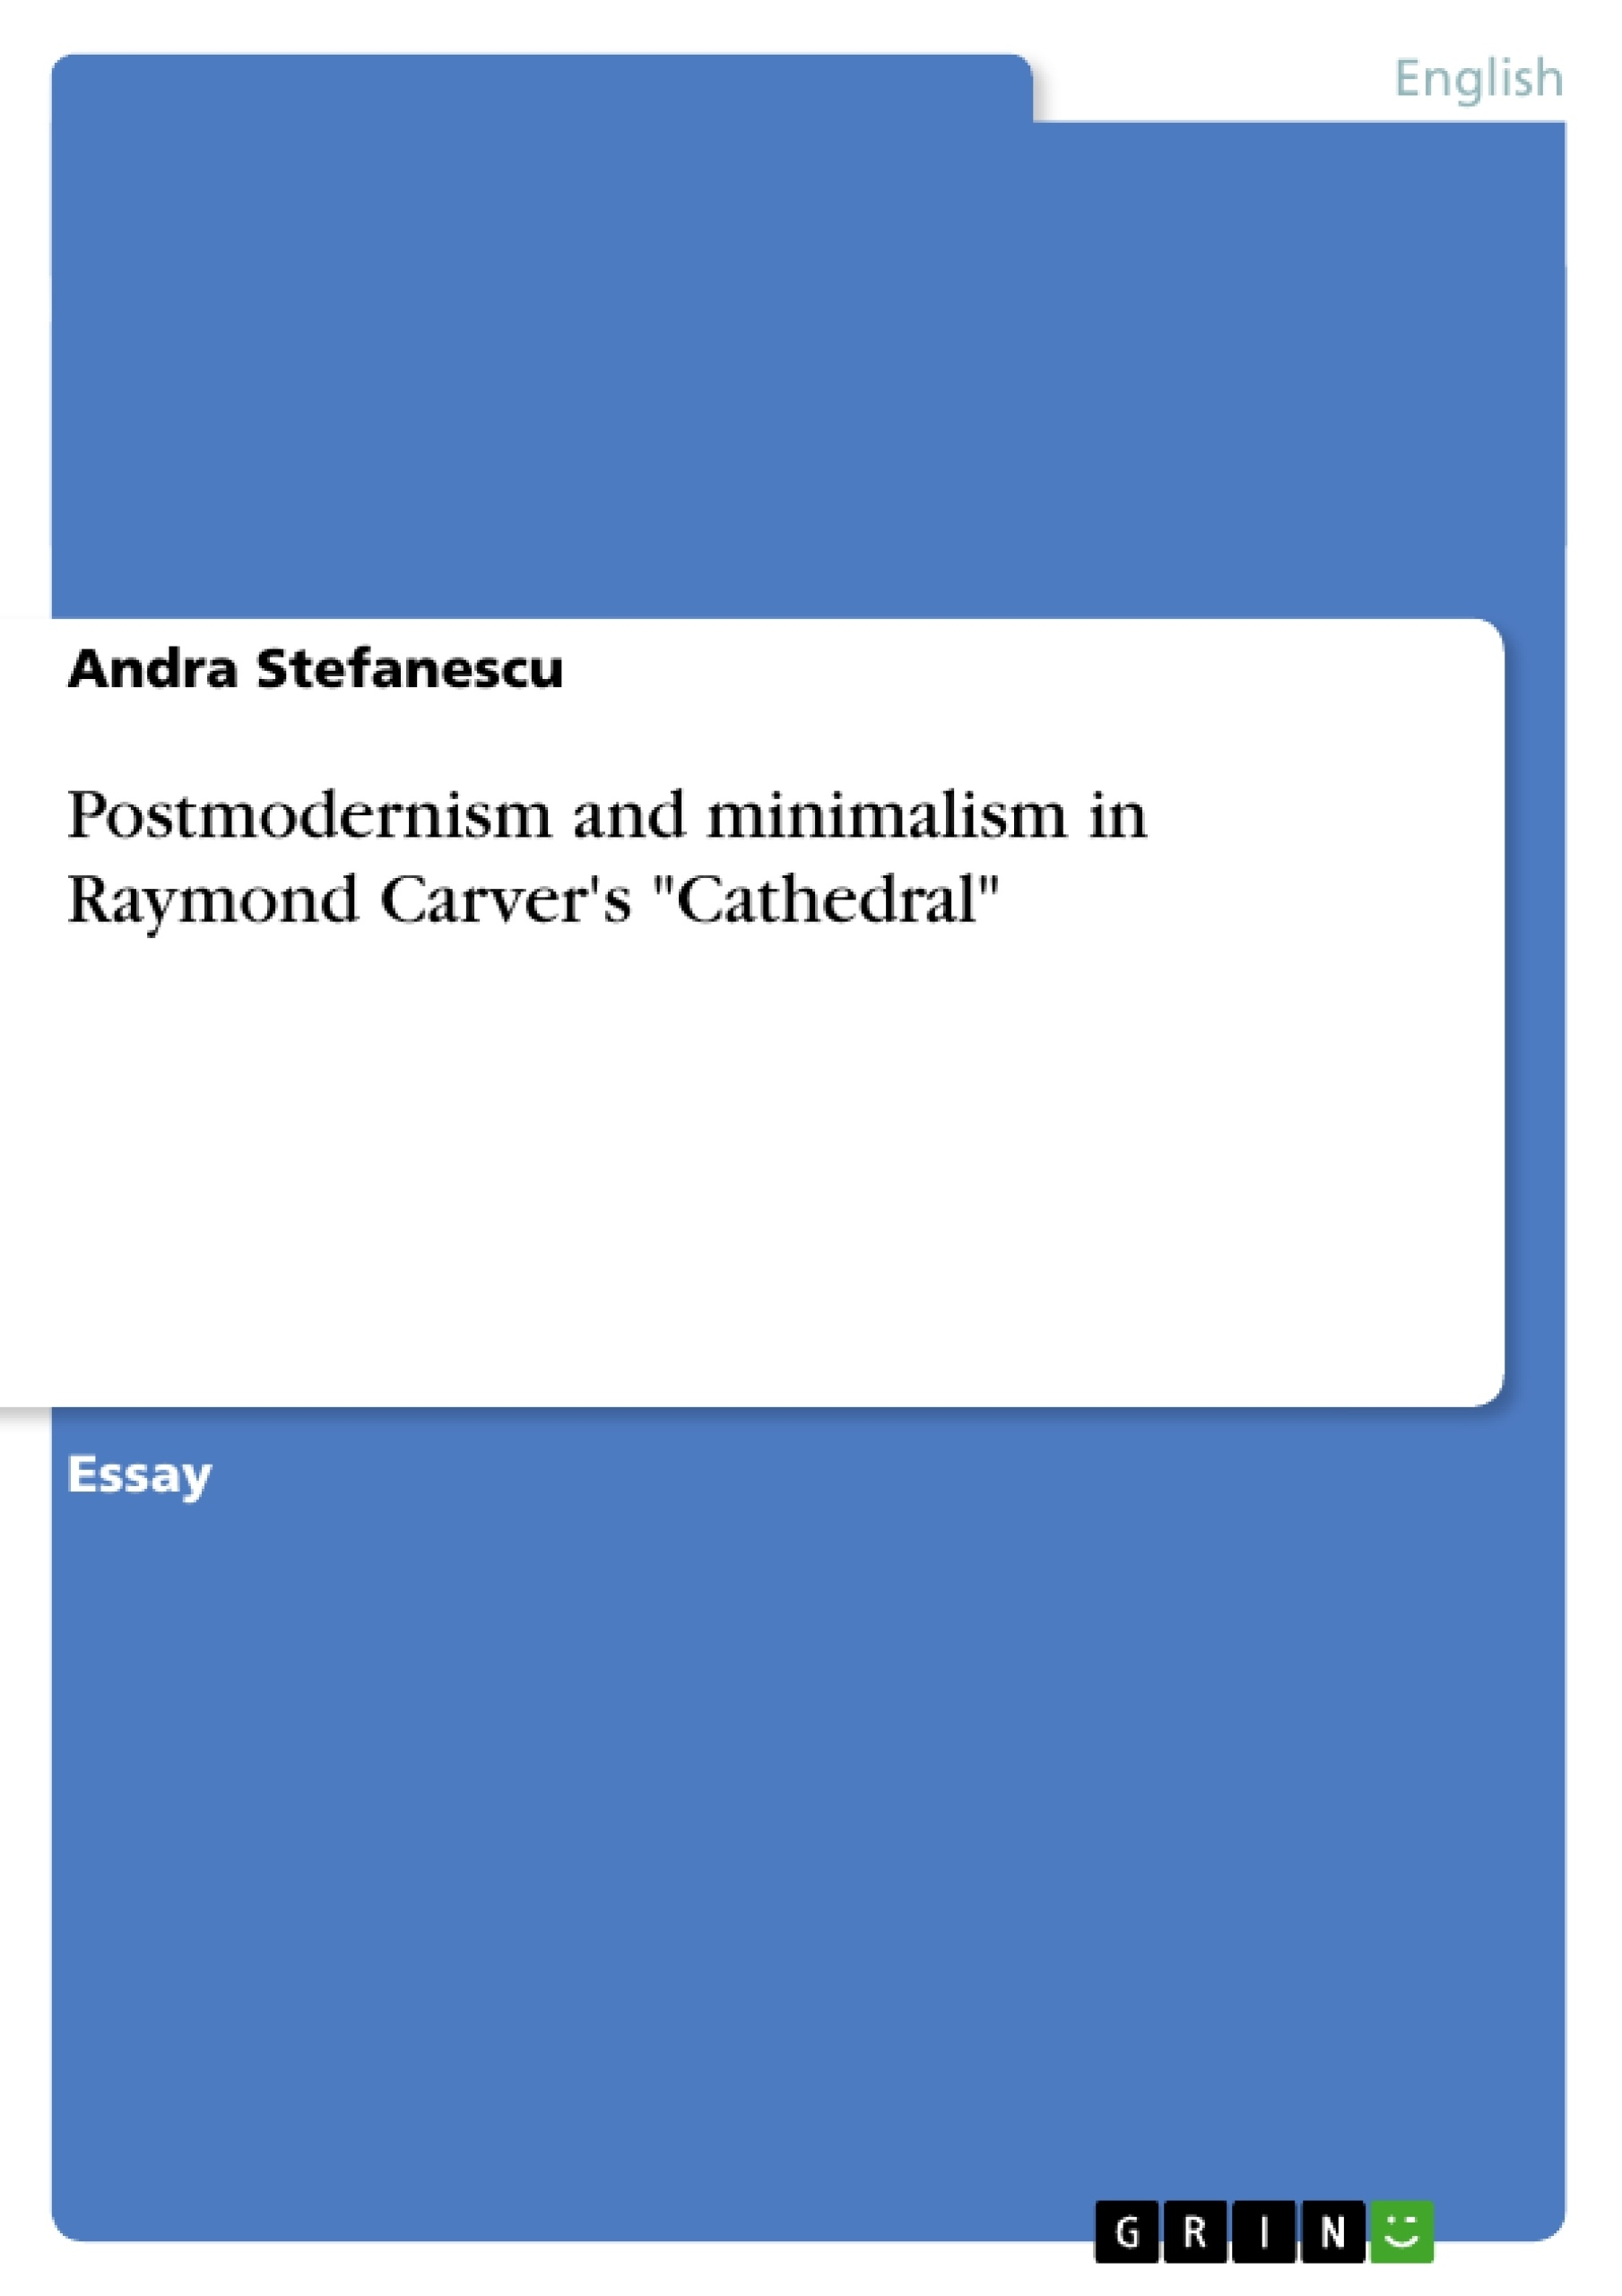 essay on cathedral by raymond carver